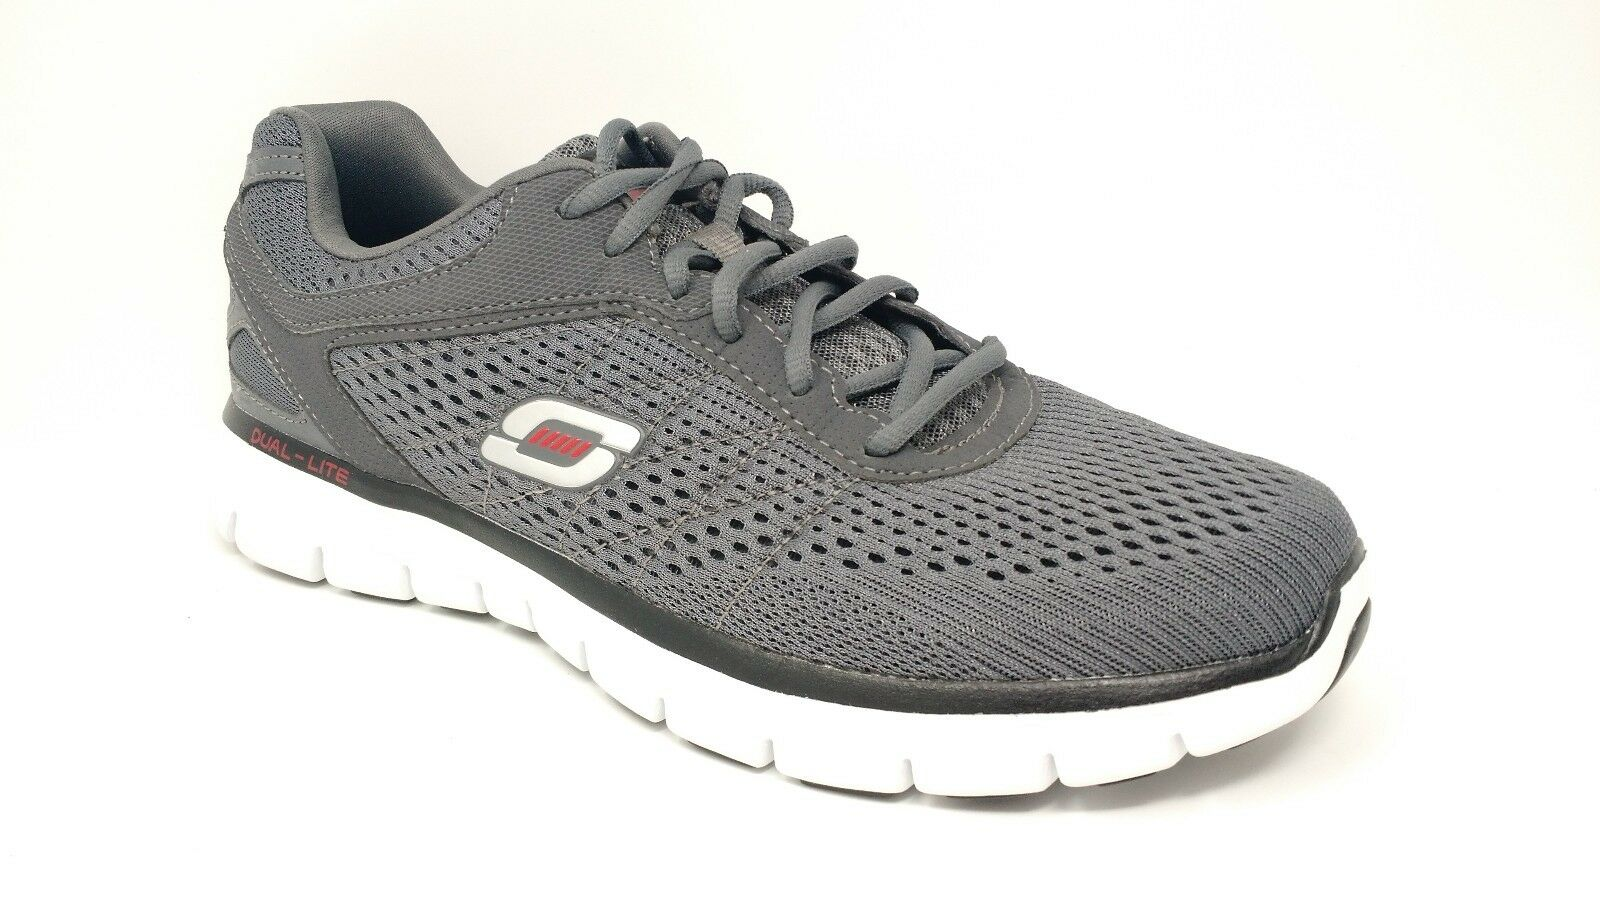 Skechers Mens Memory Foam Athletic Shoes Grey/Red Price reduction Comfortable and good-looking